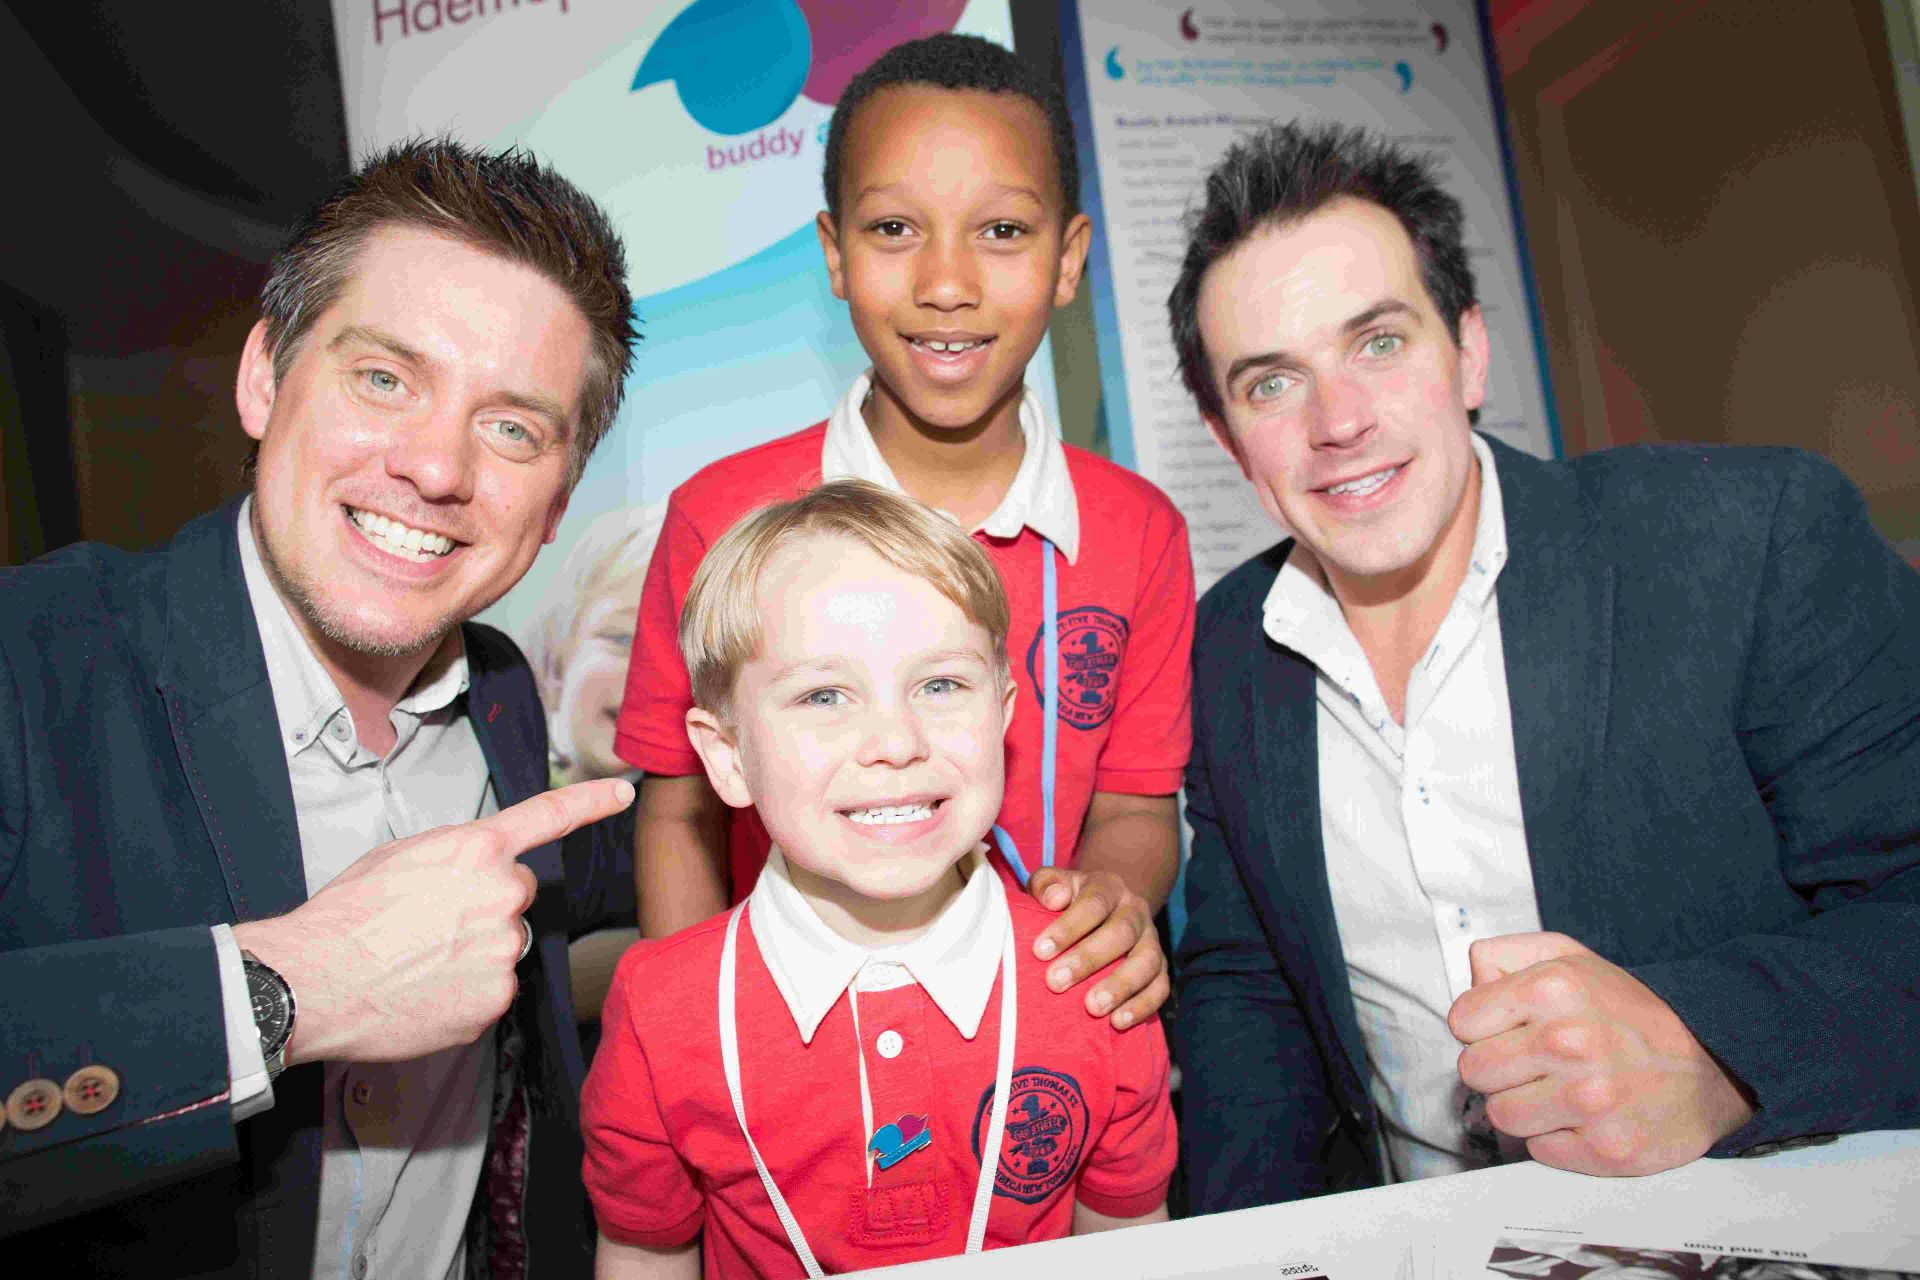 AWARDS: Buddy Awards winner Cassius Lister and his little brother Jonny with TV presenters Dick and Dom